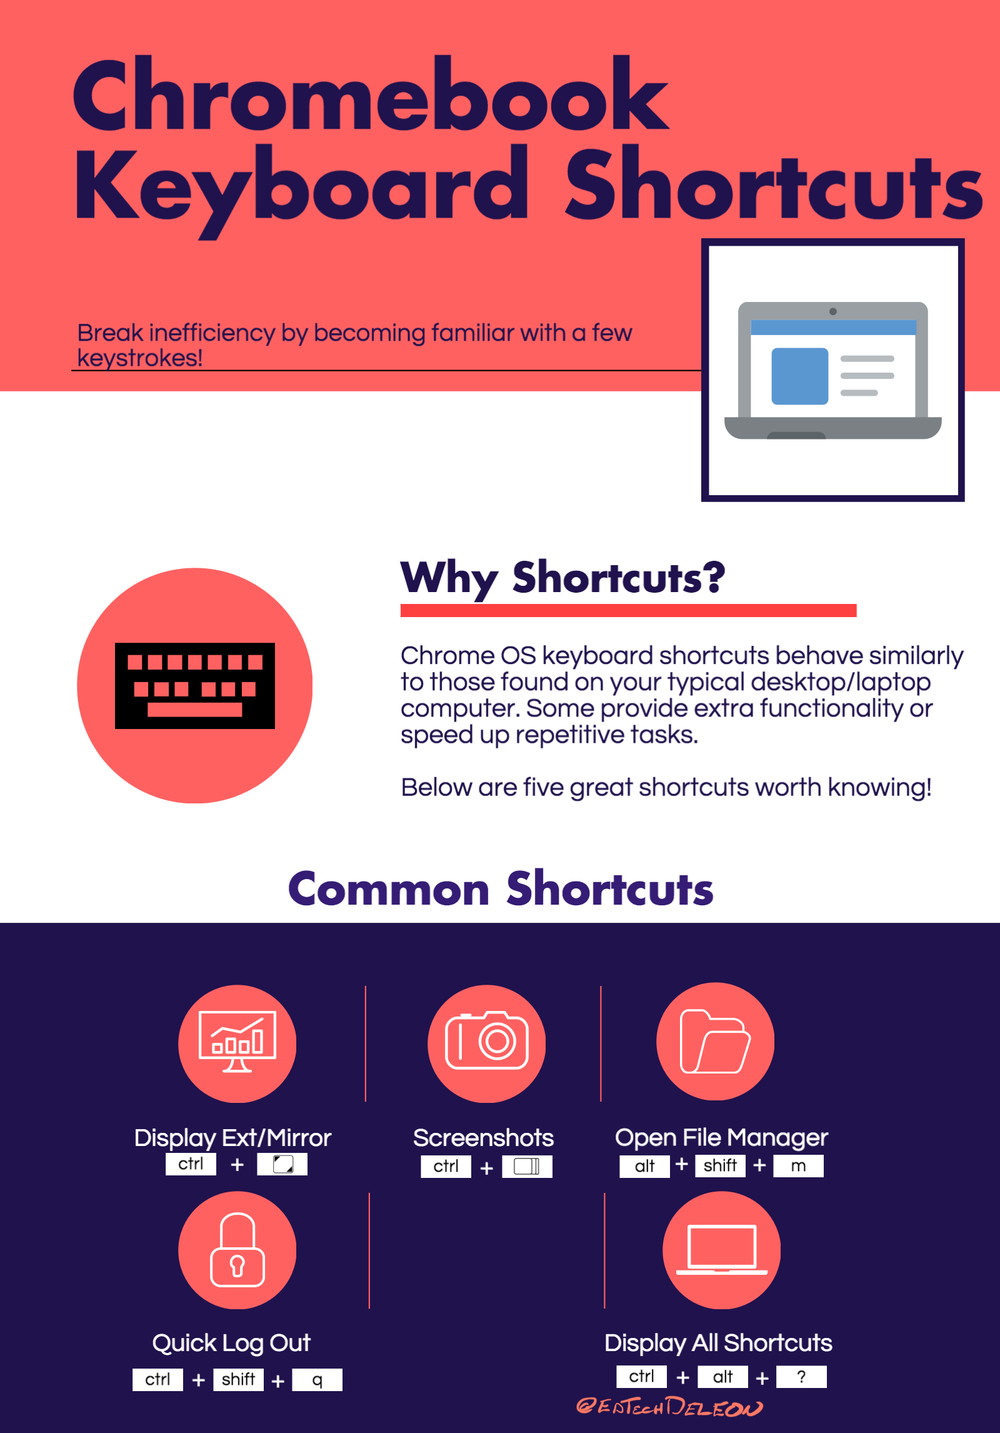 Chromebook Keyboard Shortcuts Guide